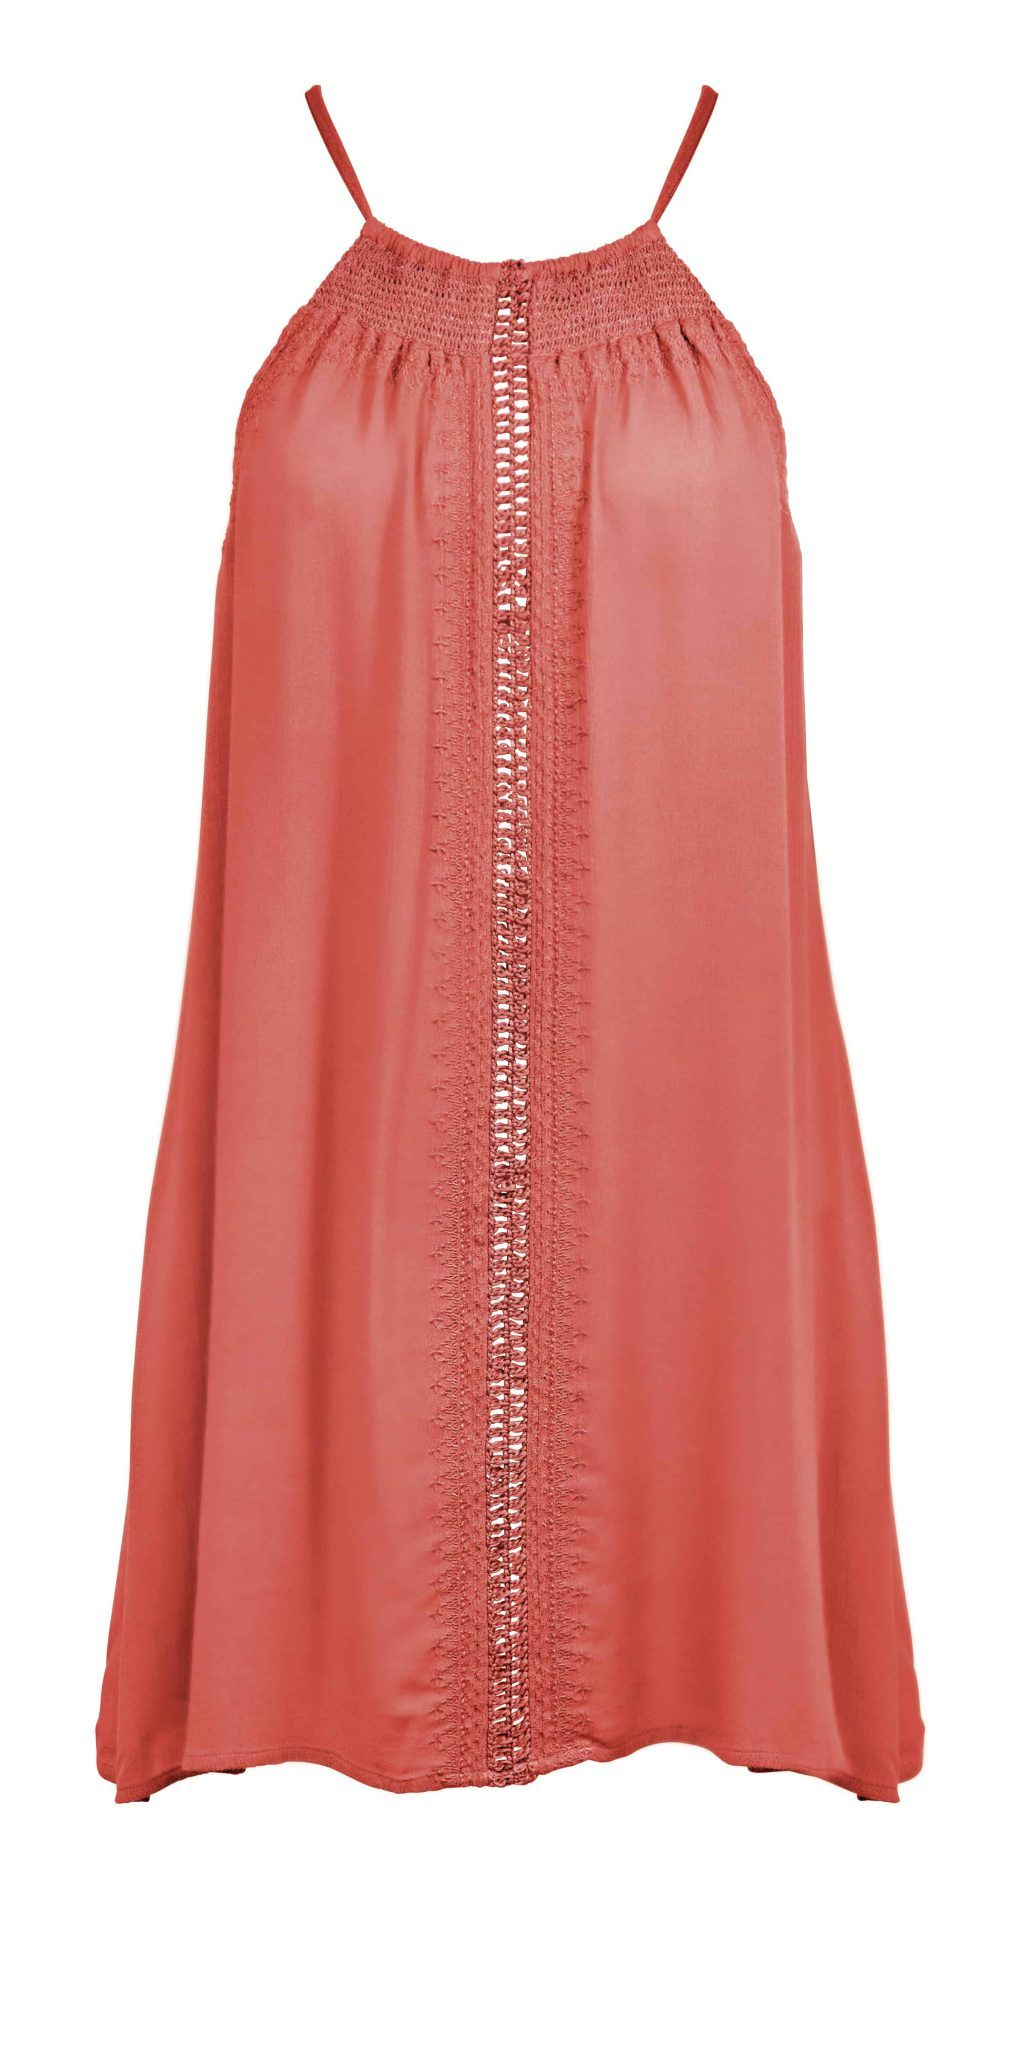 Watercult Summer Solids Dress in Watermelon l